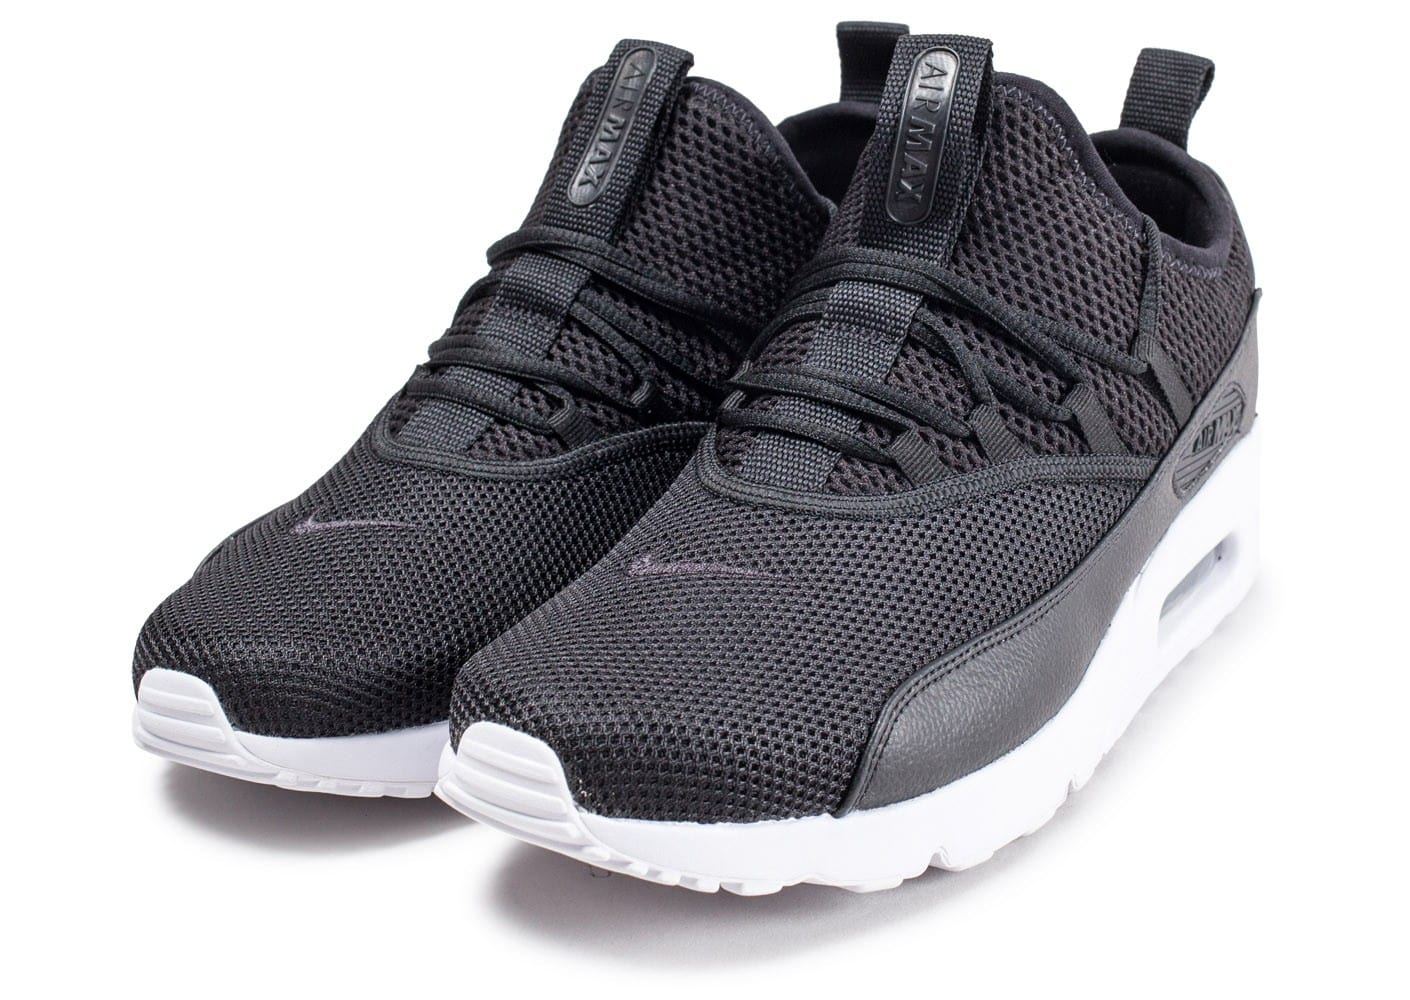 sports shoes 350aa 8aa8f ... Chaussures Nike Air Max 90 EZ noire vue intérieure ...